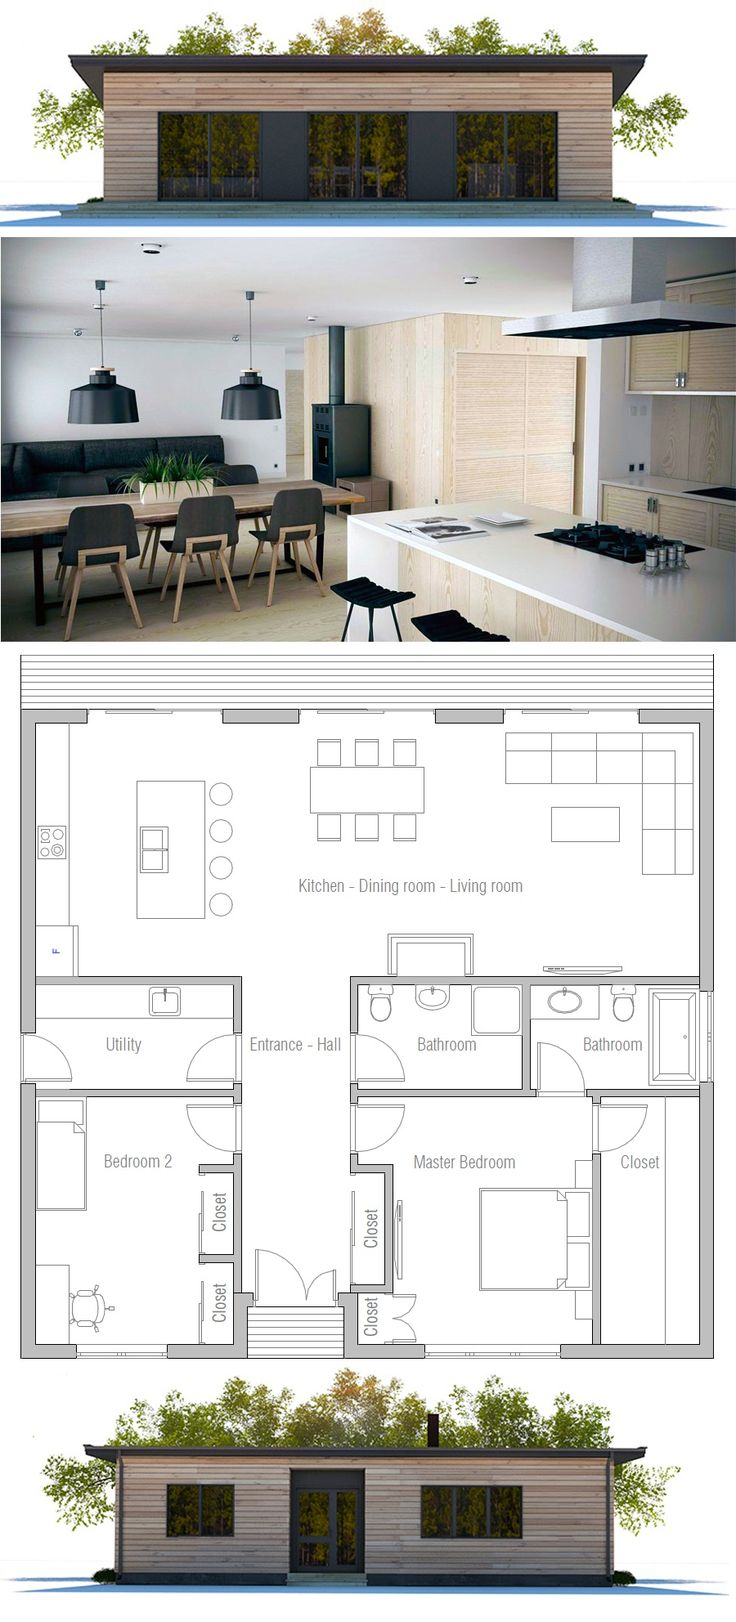 2 Bedroom House Plans: 25+ Best Ideas About 2 Bedroom House Plans On Pinterest